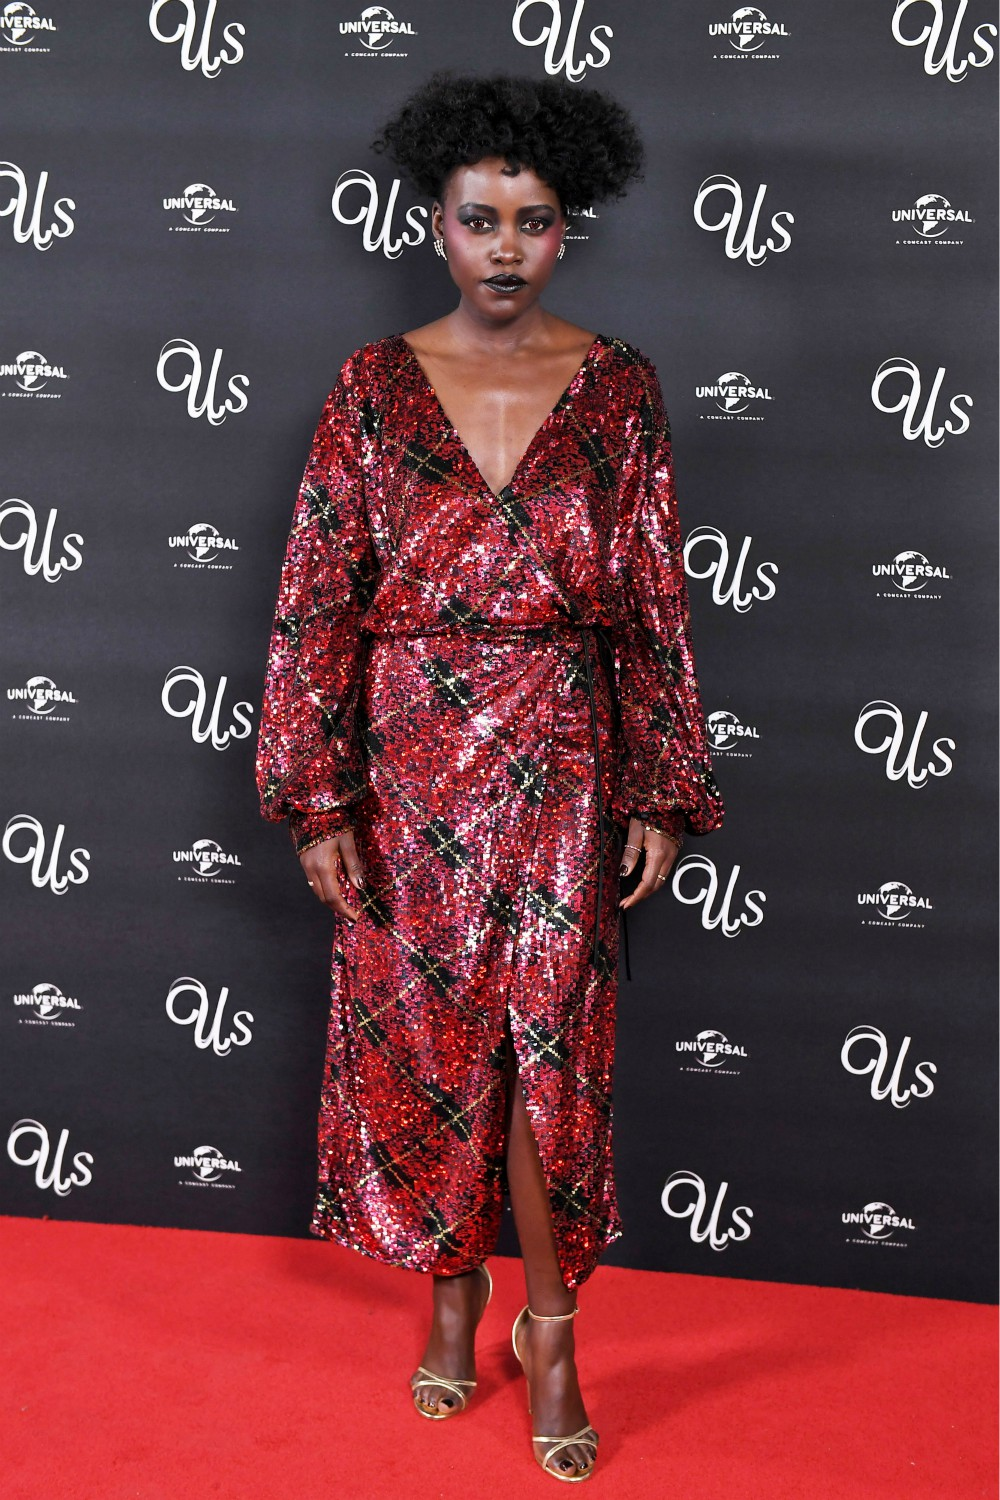 Actress Lupita N'yongo shows off Jester Red on the red carpet.